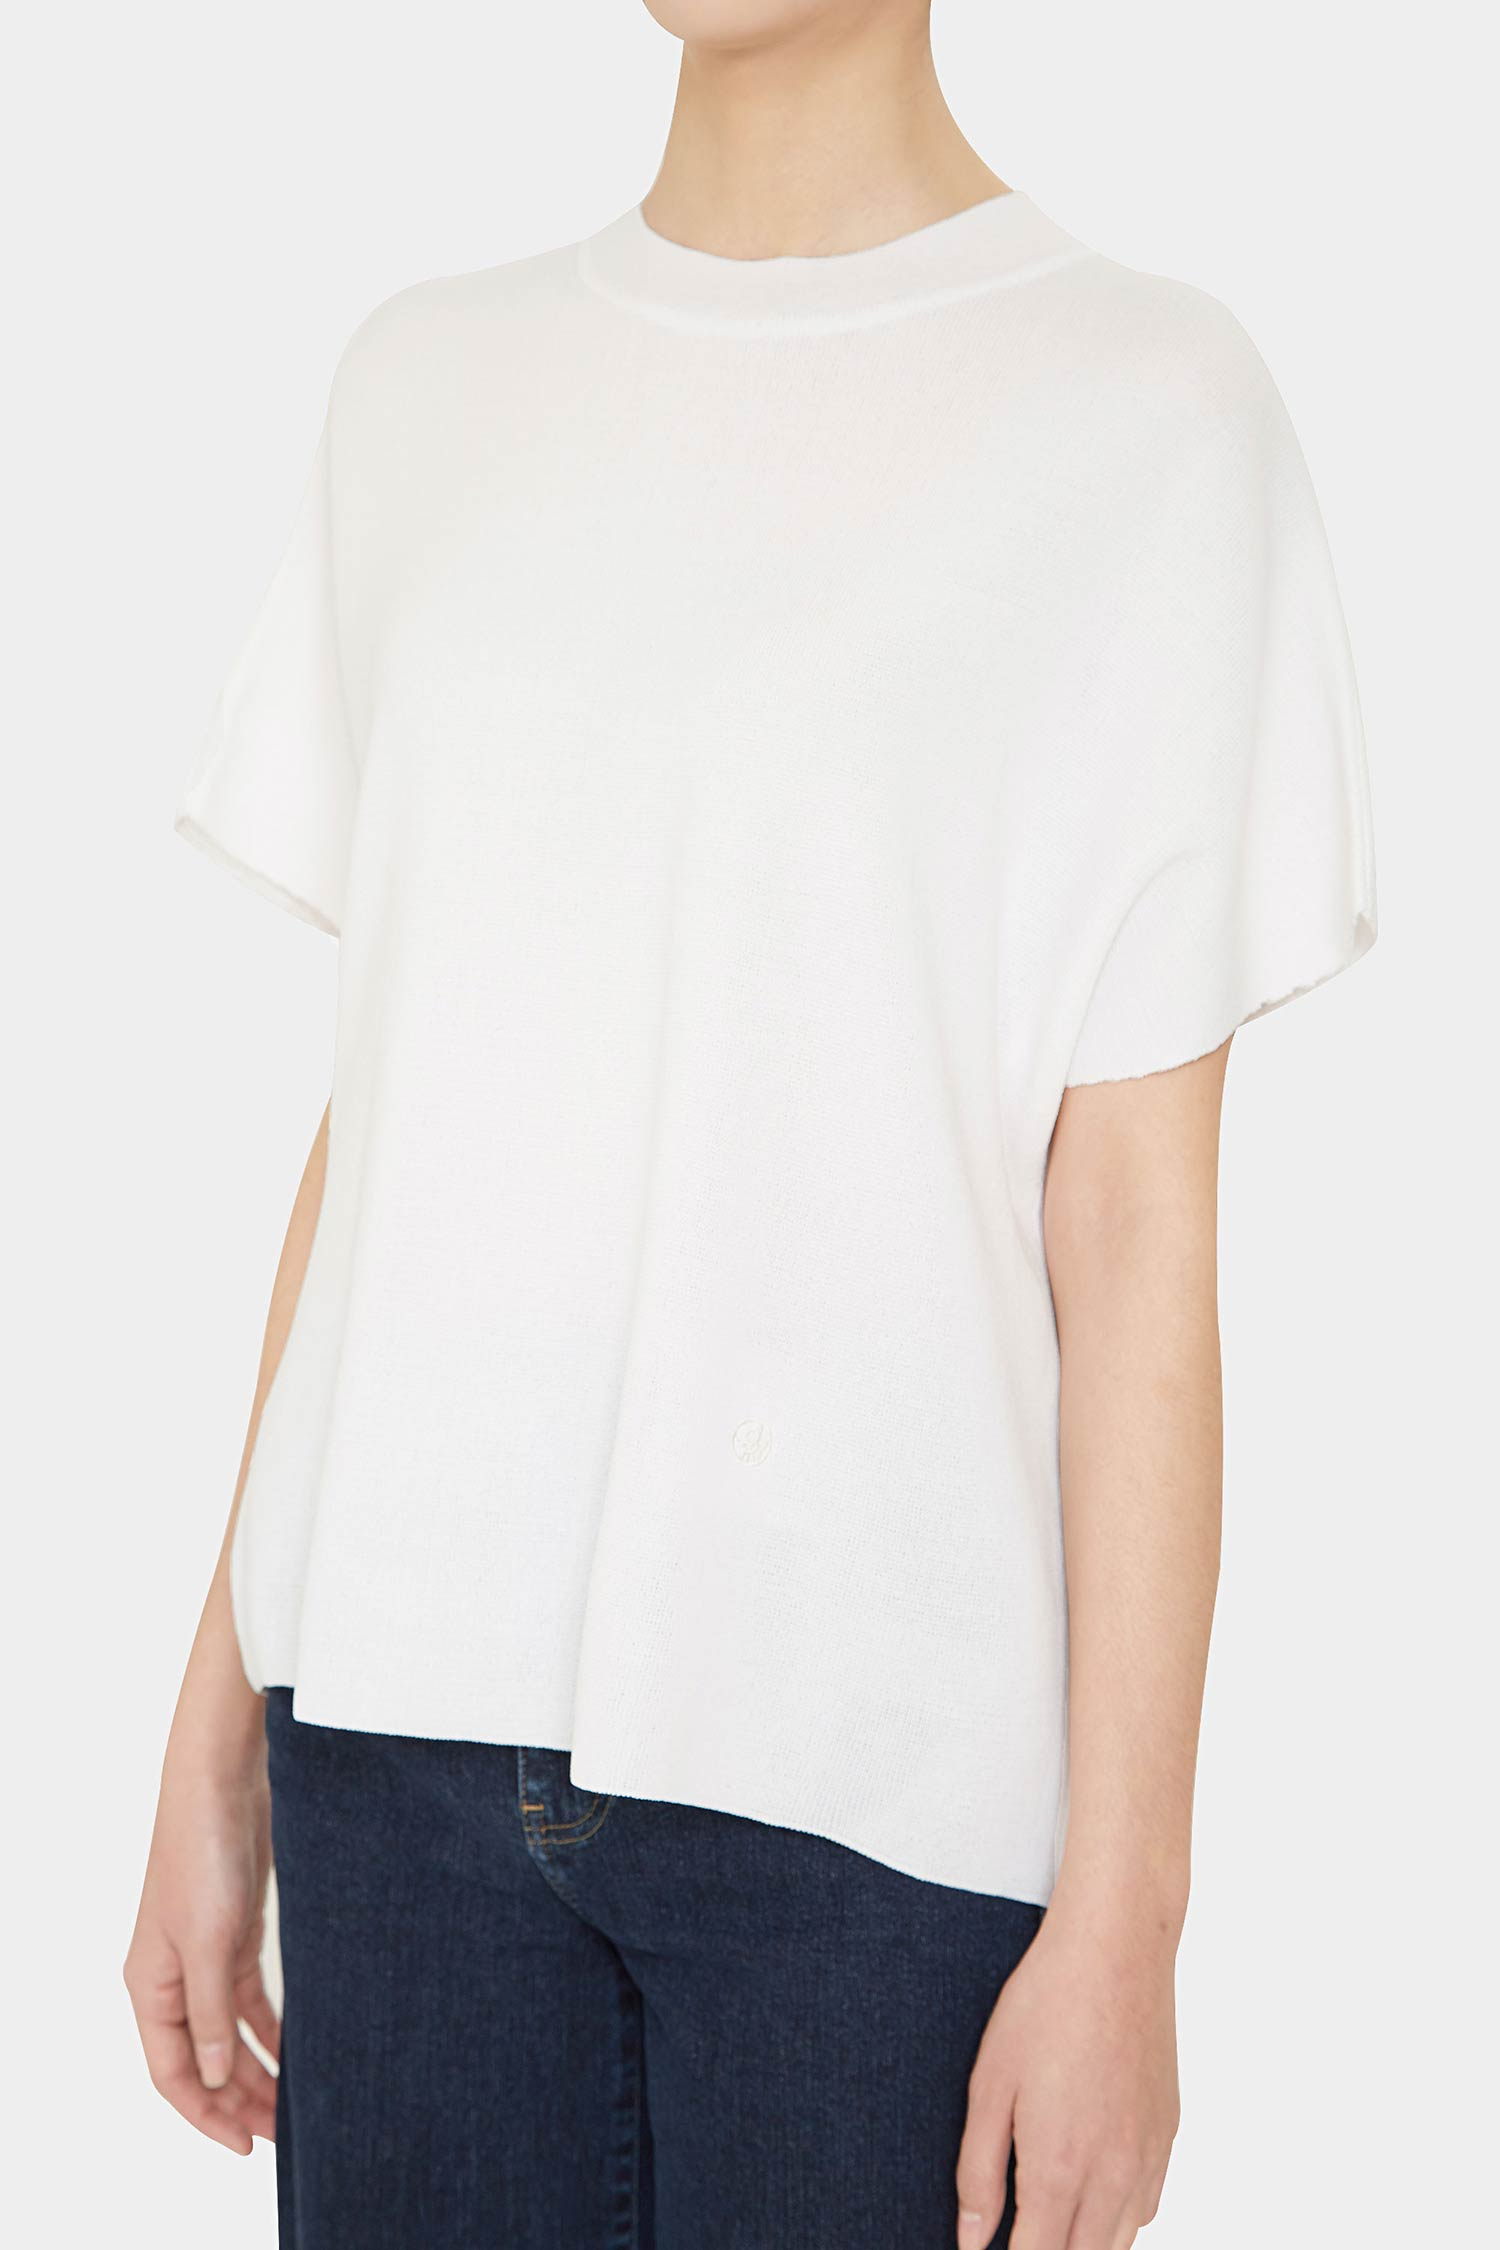 WHITE ANI PERFECT HIGH NECK TOP